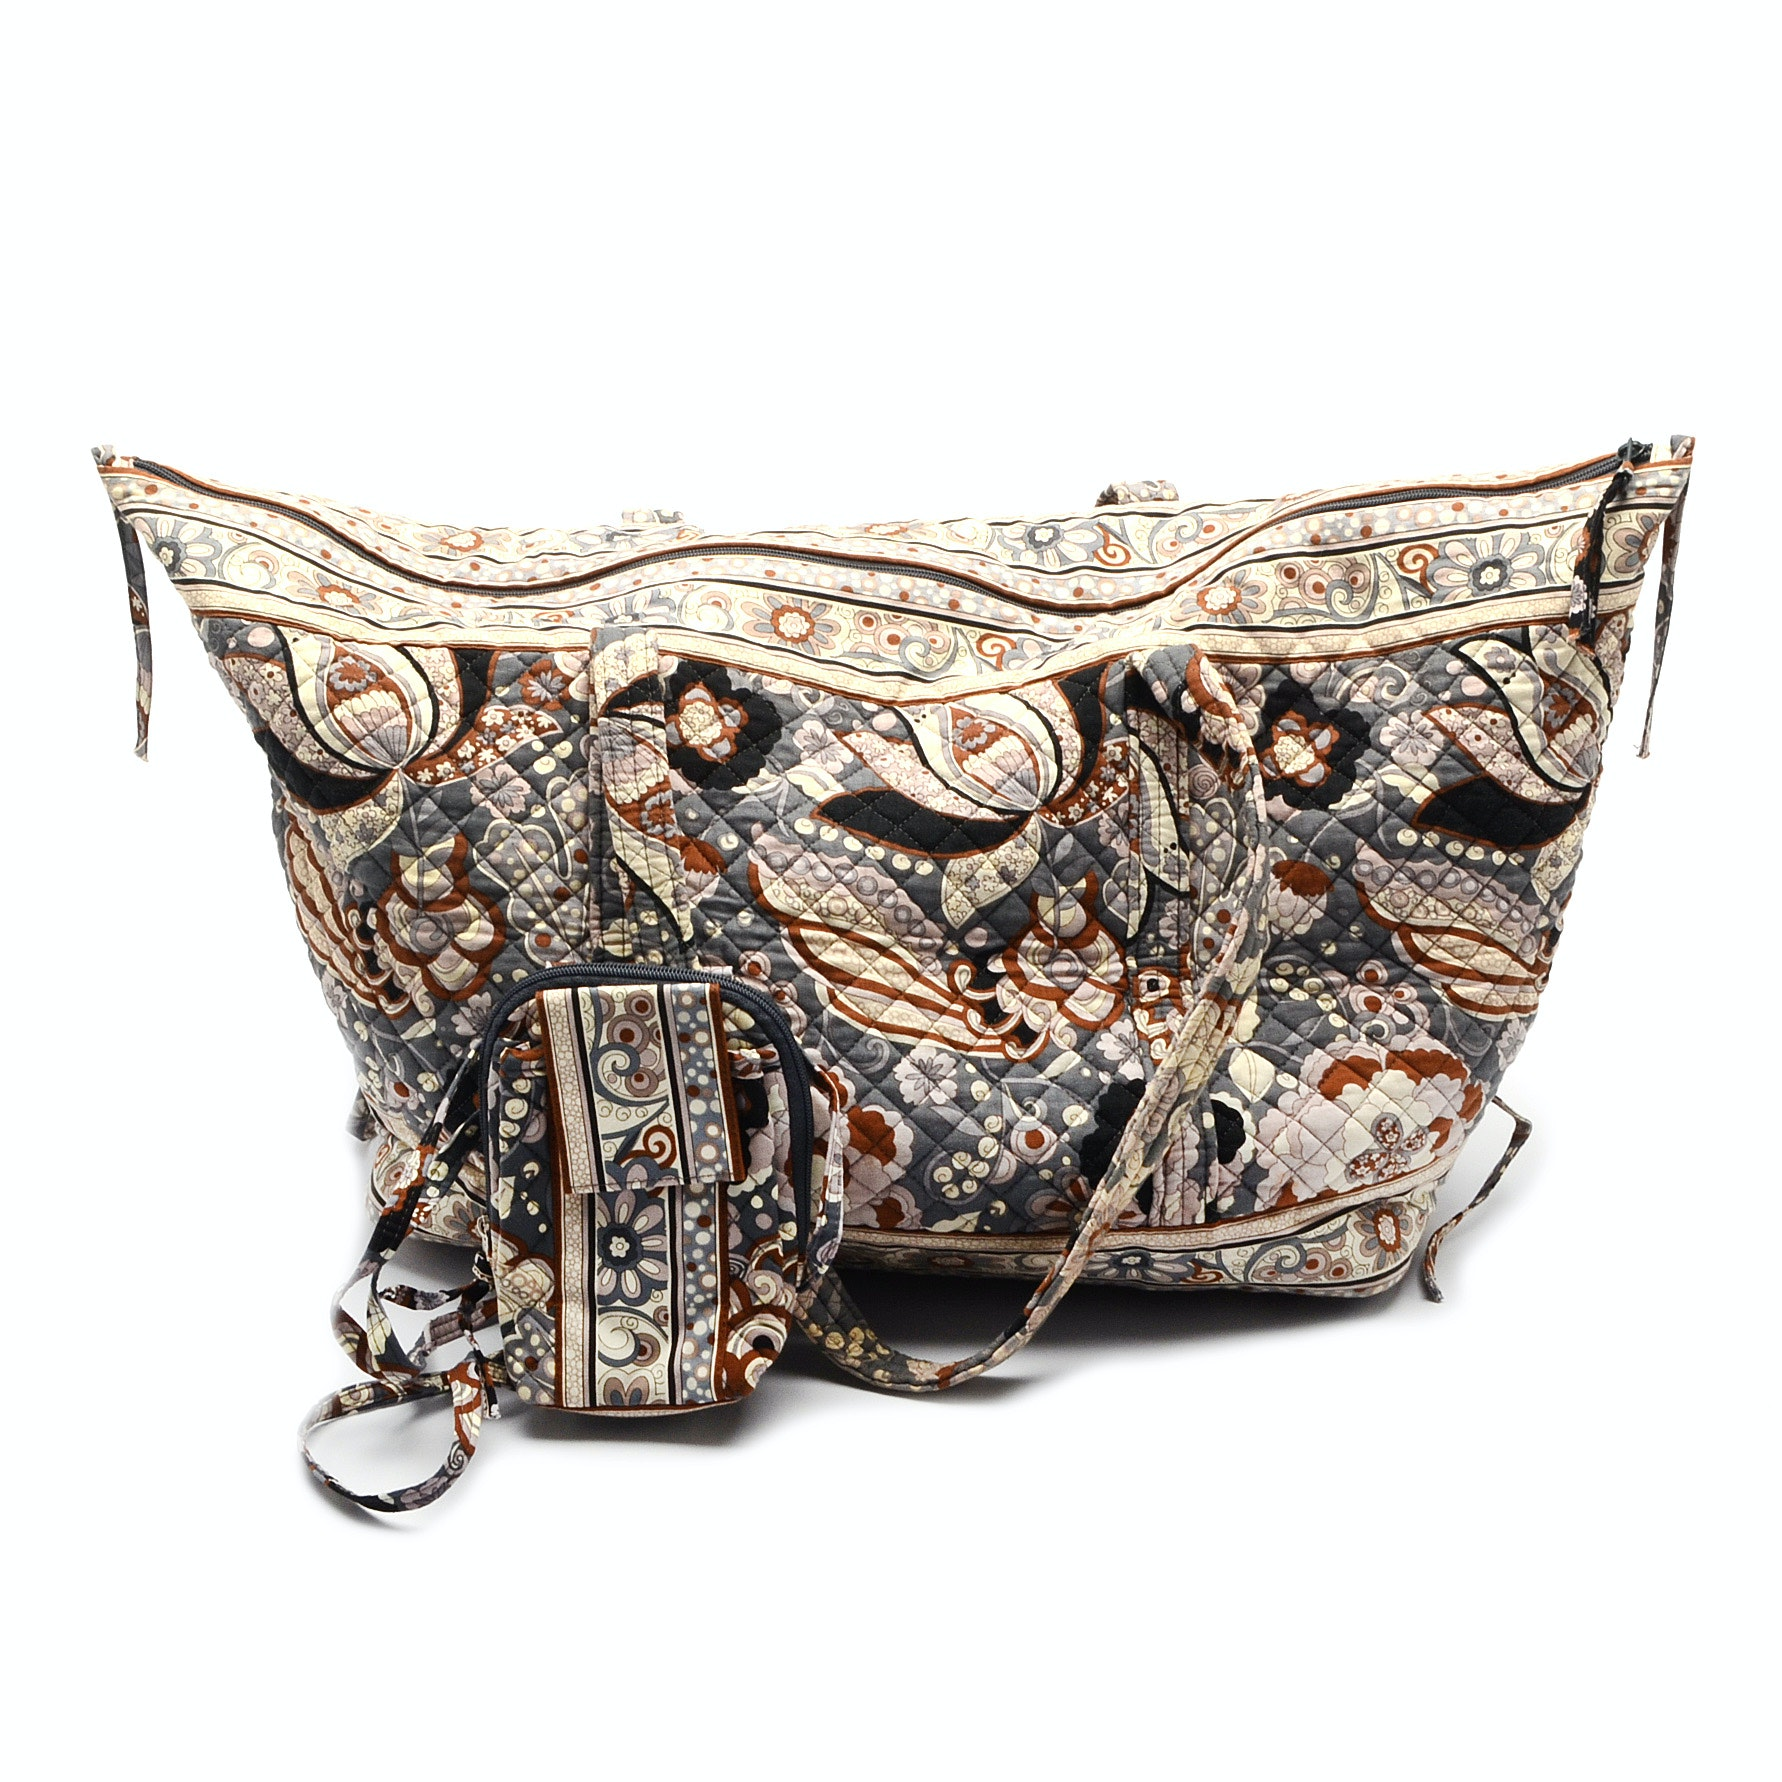 Stephanie Dawn's Gray Paisley Duffle Bag and Convertible Mobile Bag